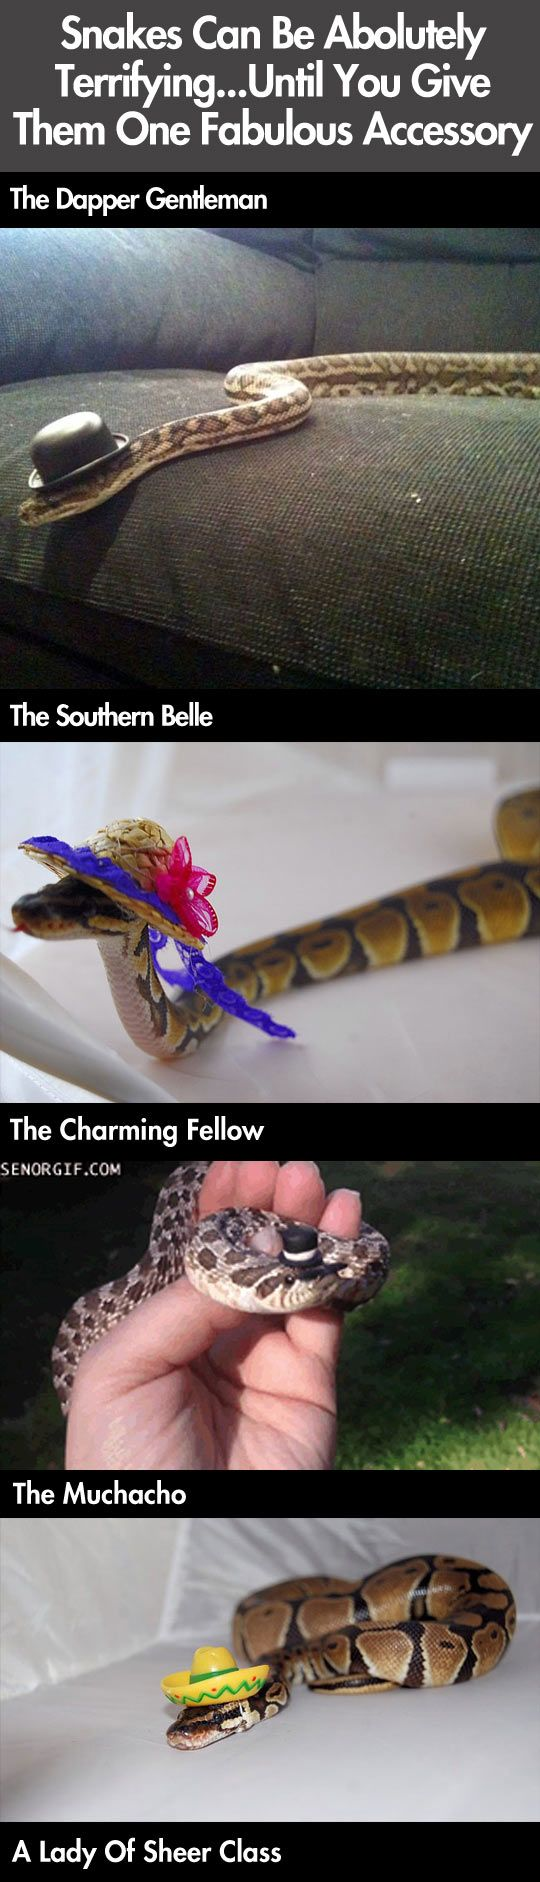 Snakes have never been prettier (thank god for the edit button)